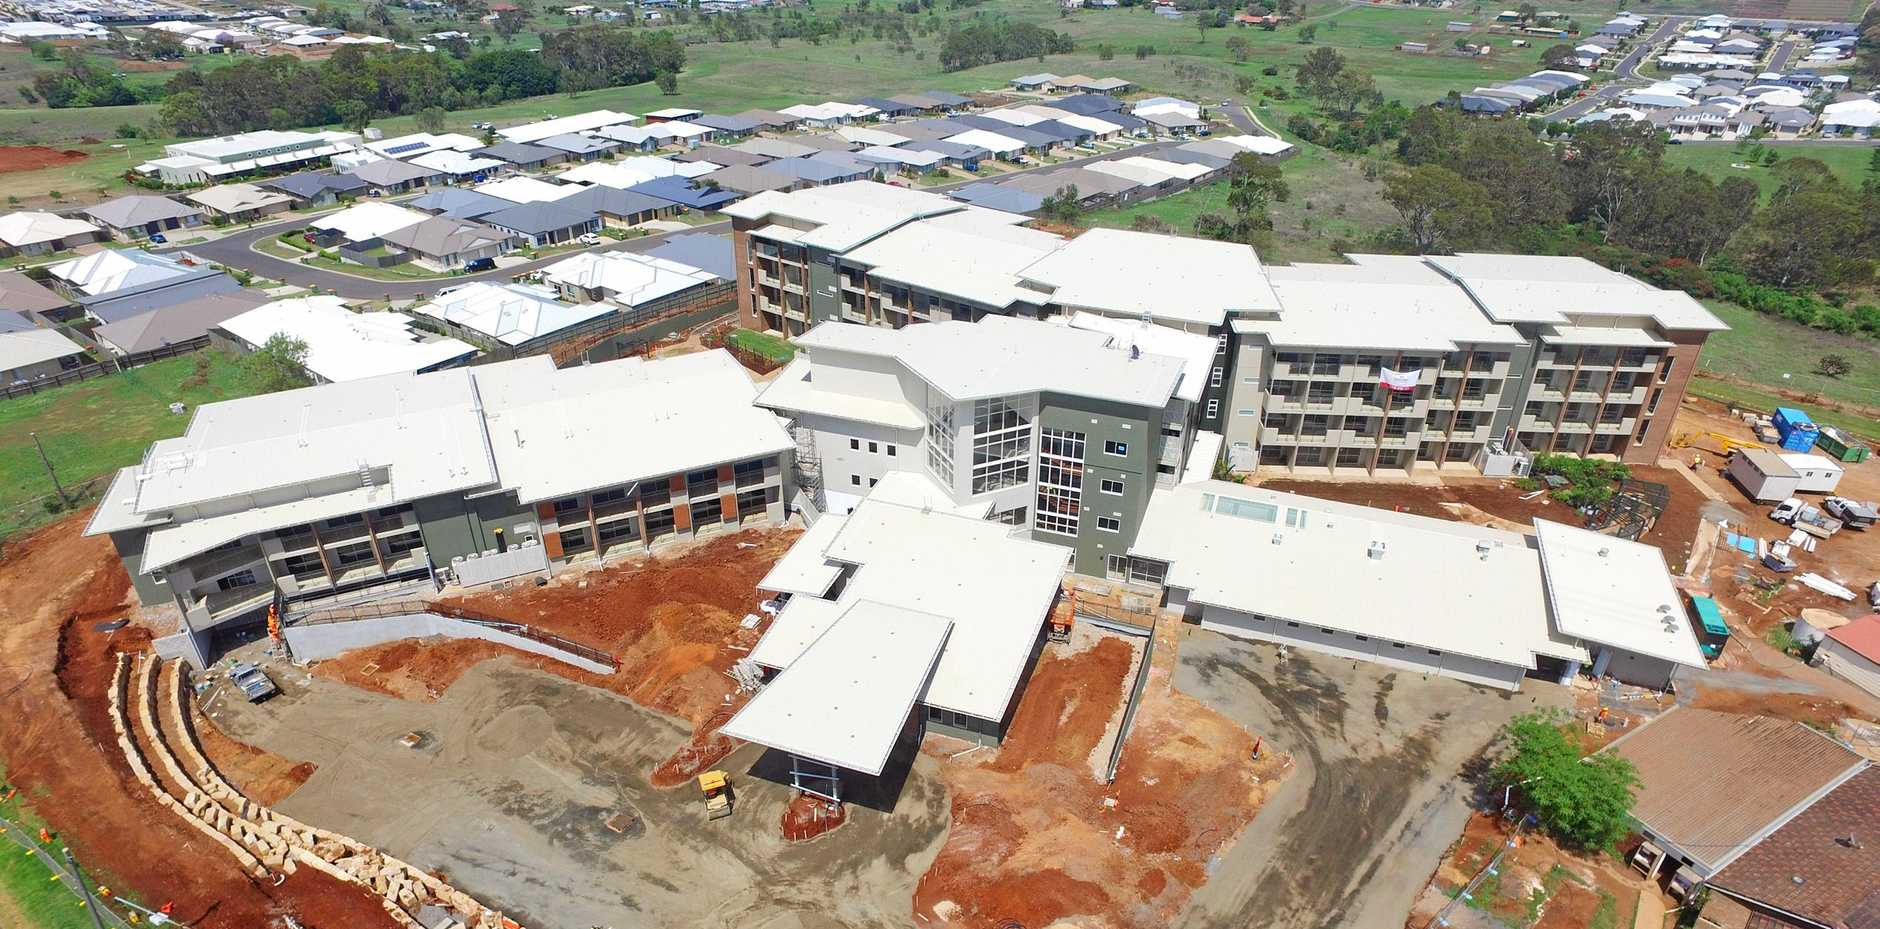 Ozcare's 150-bed aged care facility at Glenvale is nearing completion.